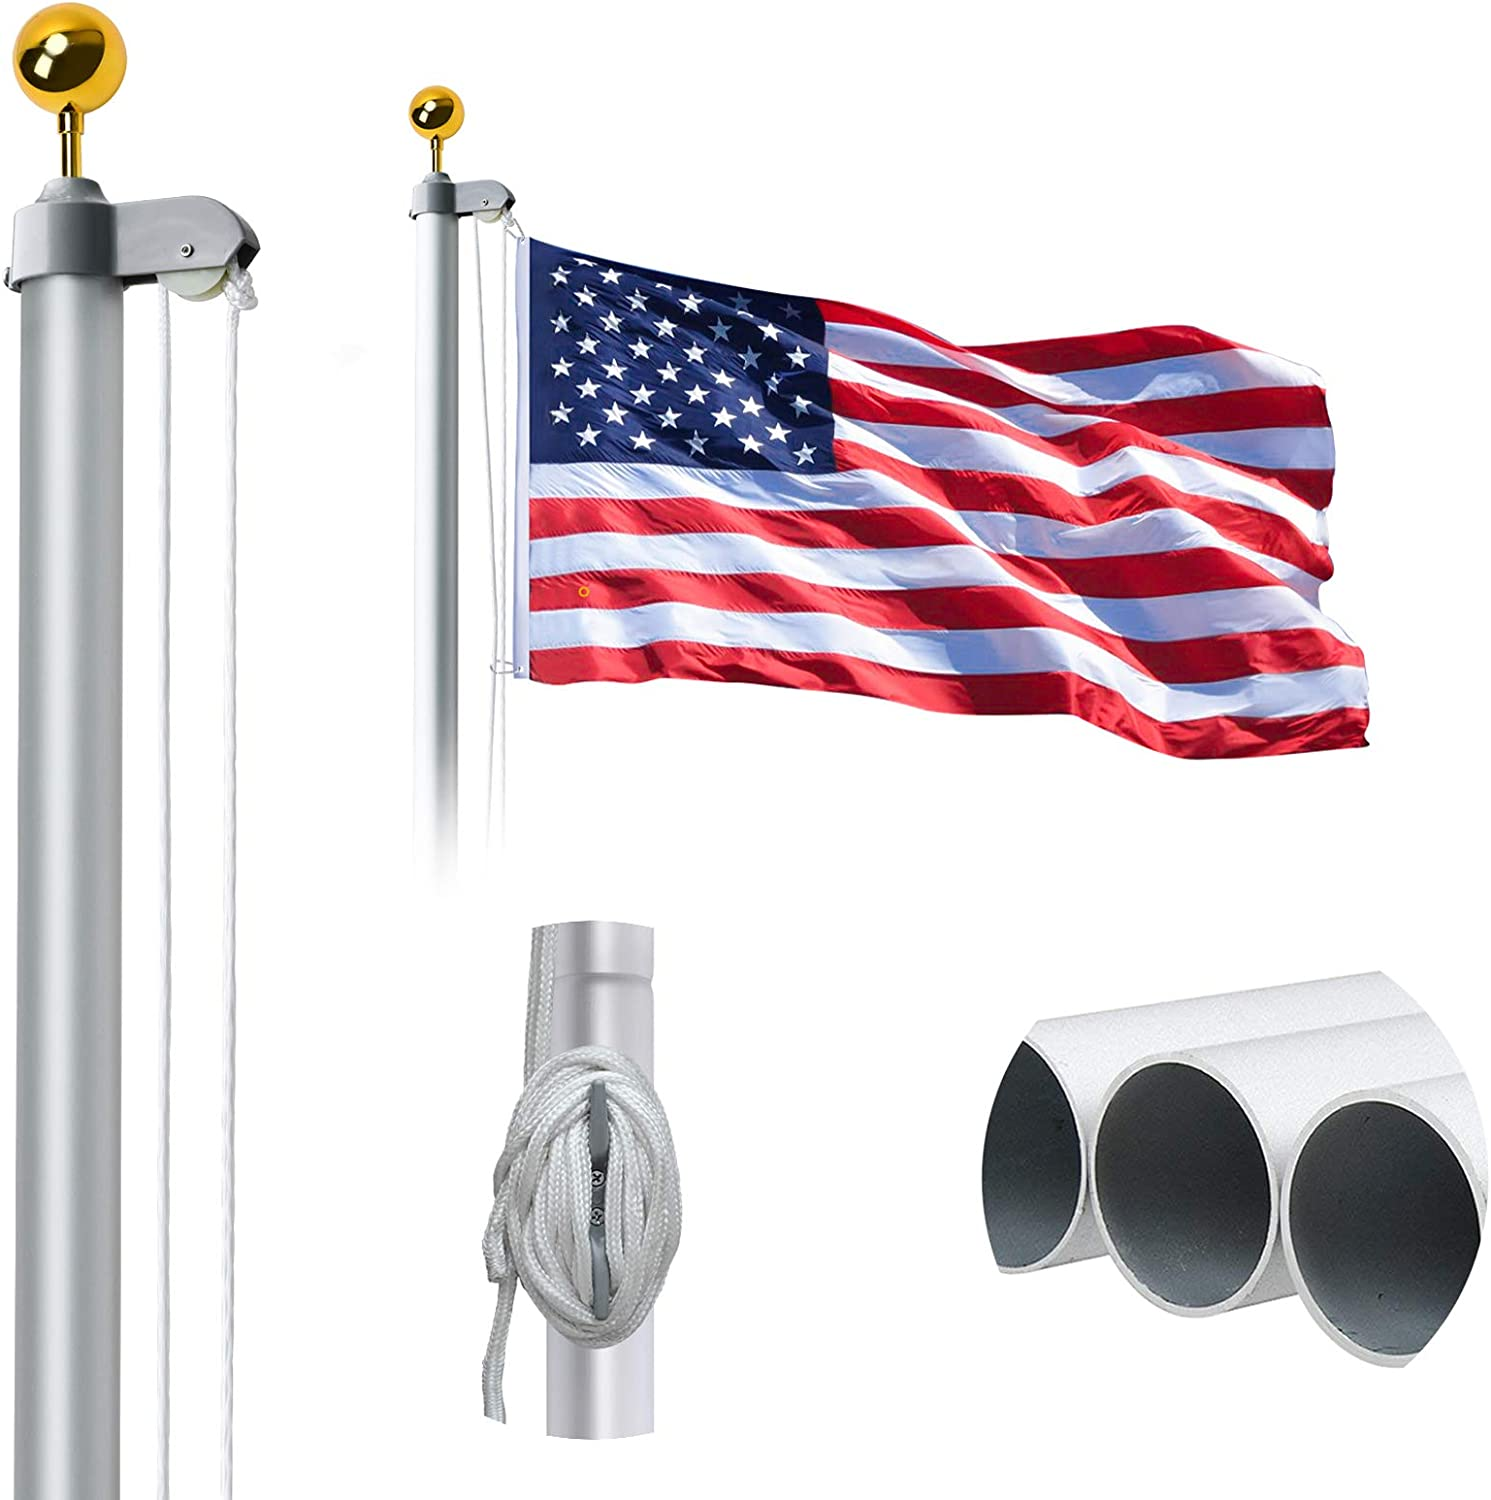 WeValor 20FT Sectional Flag Pole Kit, Extra Thick Heavy Duty Aluminum Outdoor In ground Flagpole with Free 3x5 Polyester American Flag and Golden Ball, for Residential or Commercial, Silver